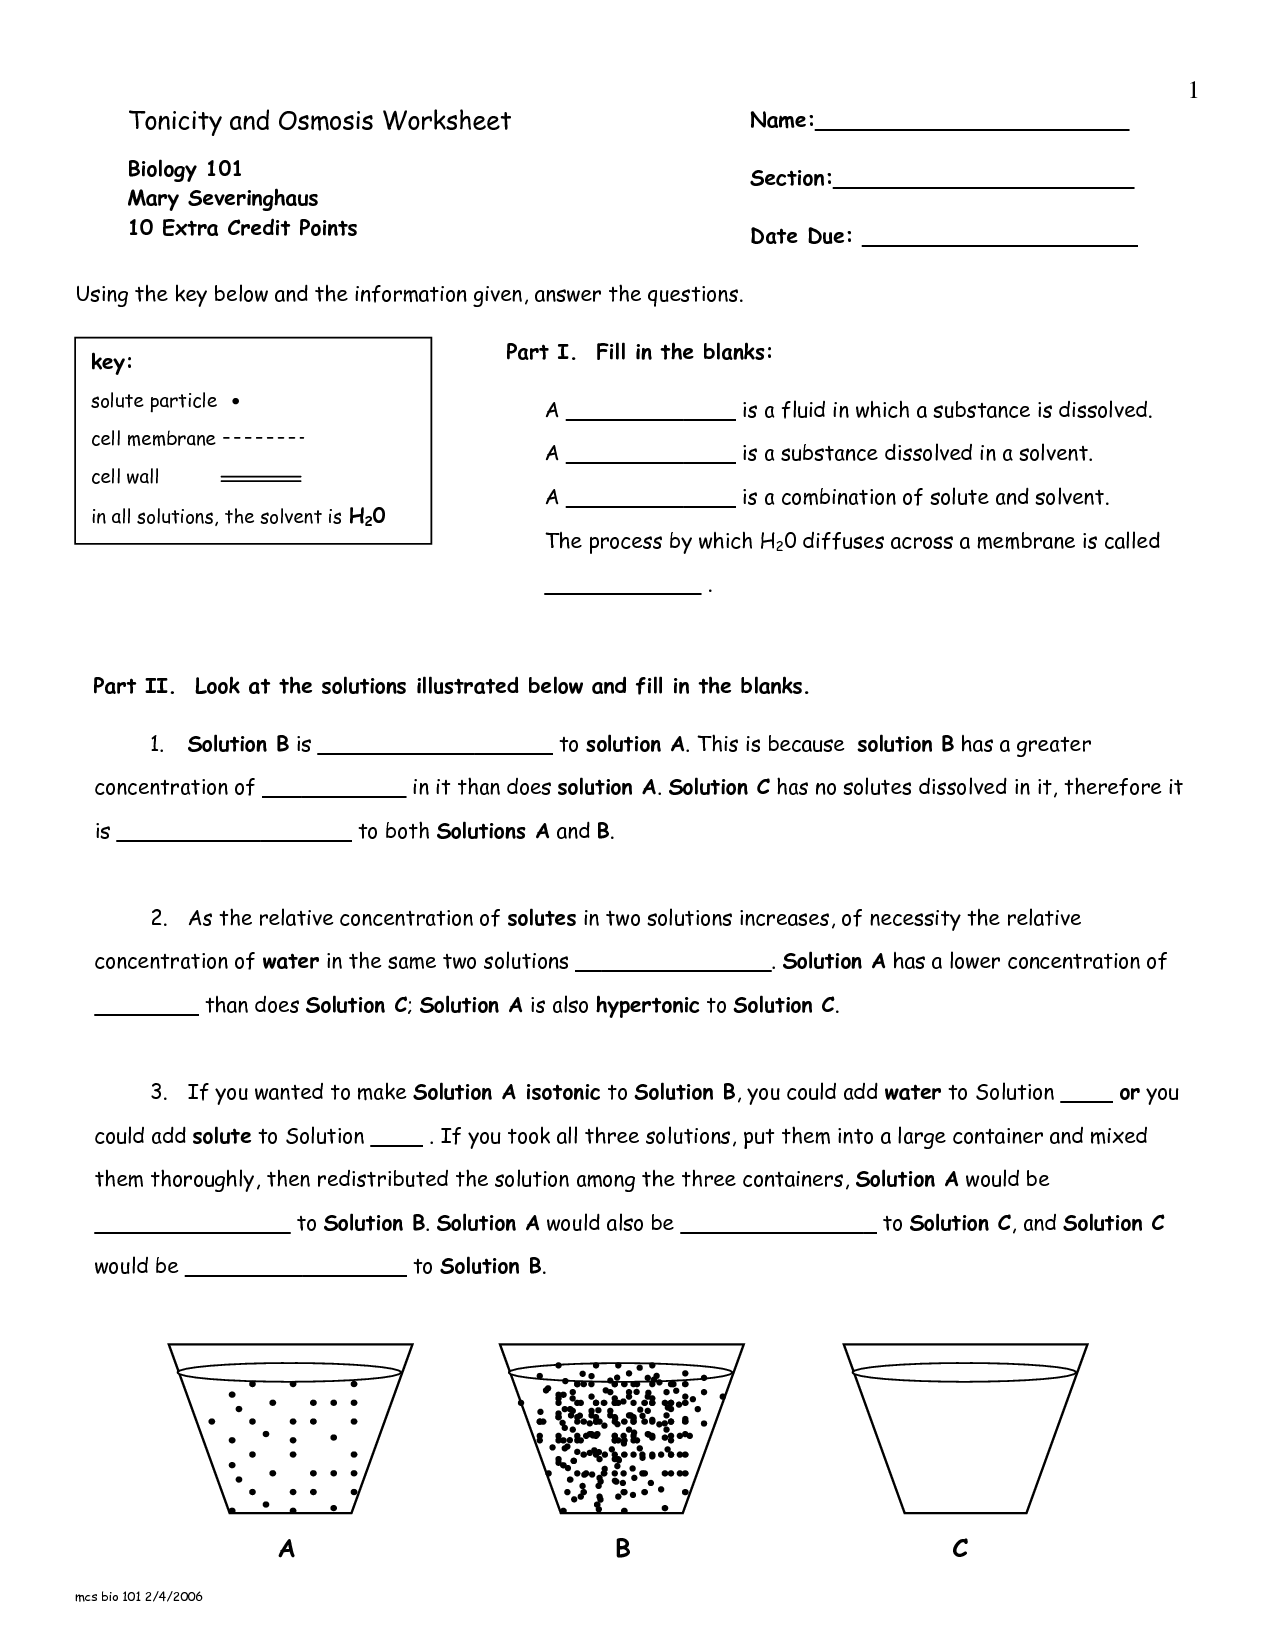 Osmosis Worksheets wiildcreative